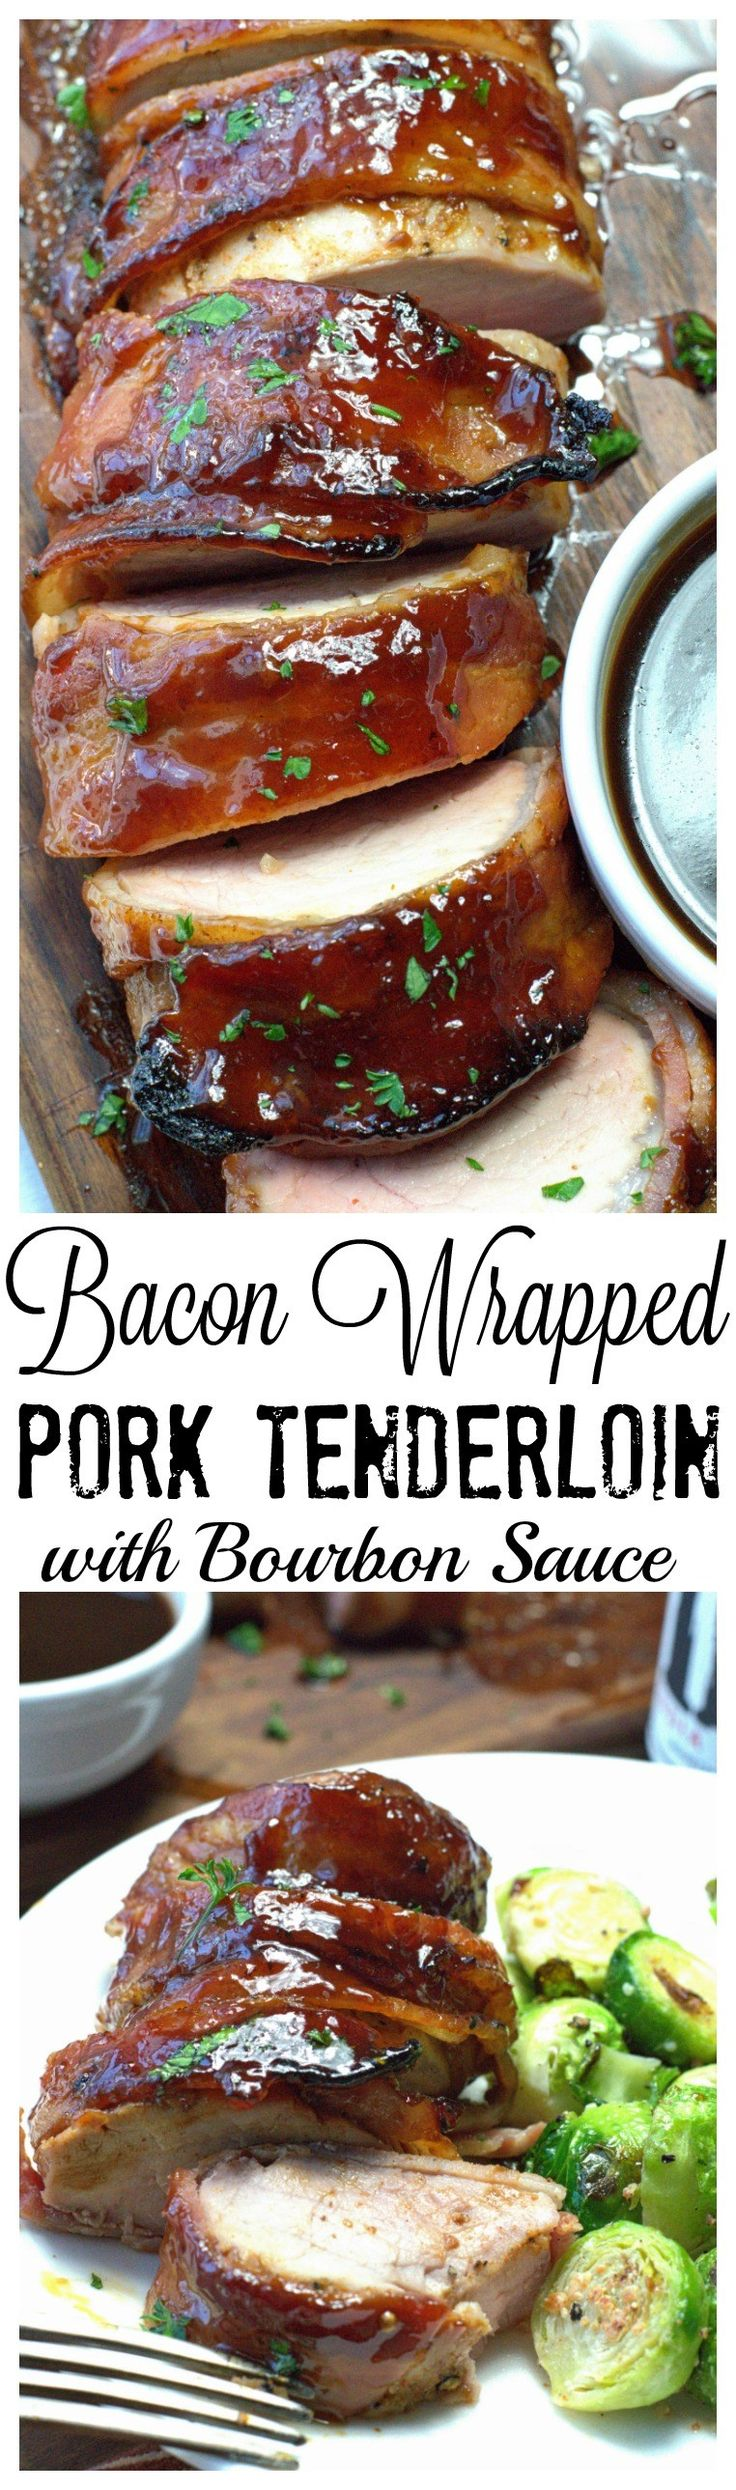 Bacon wrapped pork tenderloin with bourbon sauce turn out juicy and delicious every time.